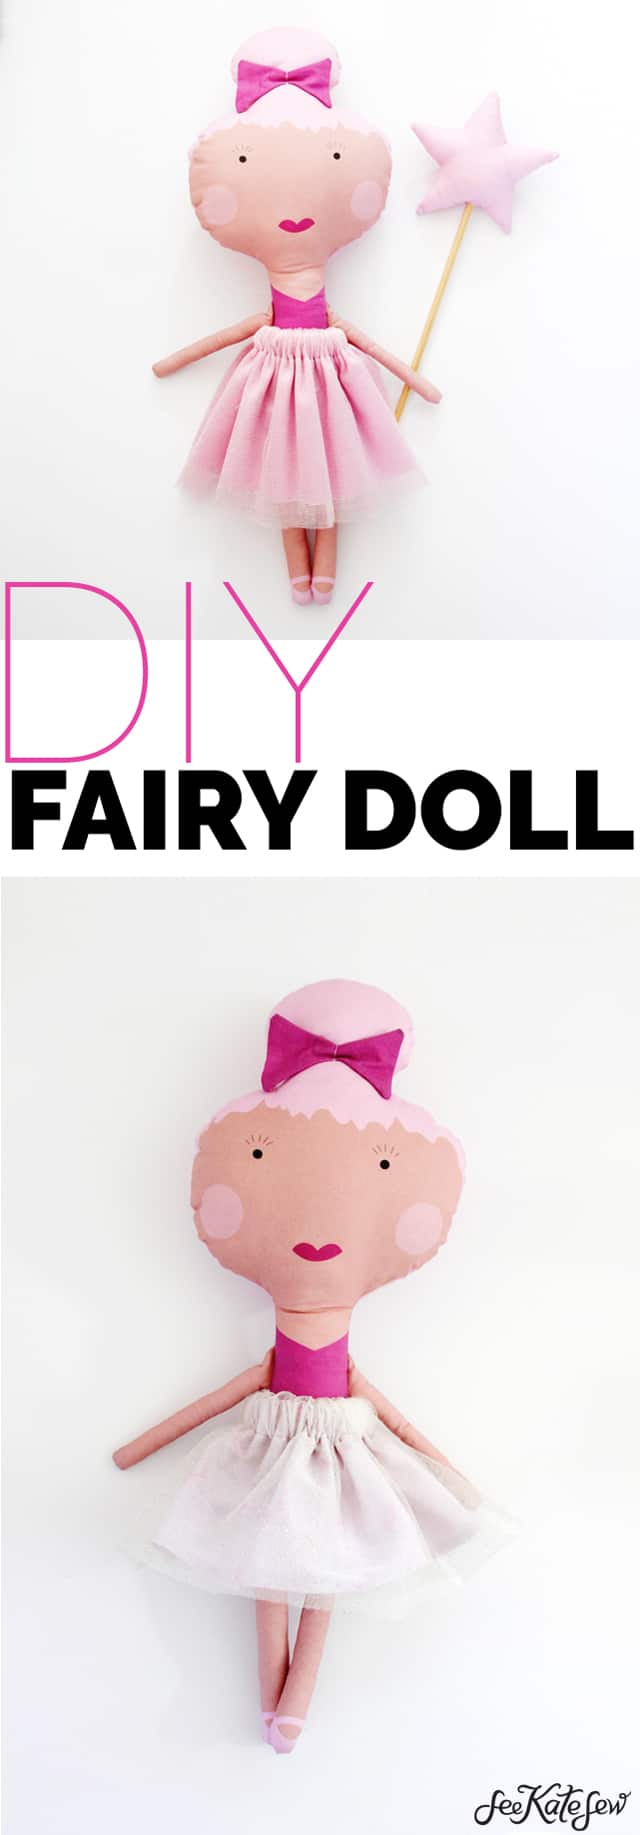 Make your own doll with doll fabric! | diy fairy doll fabric | homemade doll | diy doll | sew your own doll | doll diy | diy toys for girls || See Kate Sew #doll #diydoll